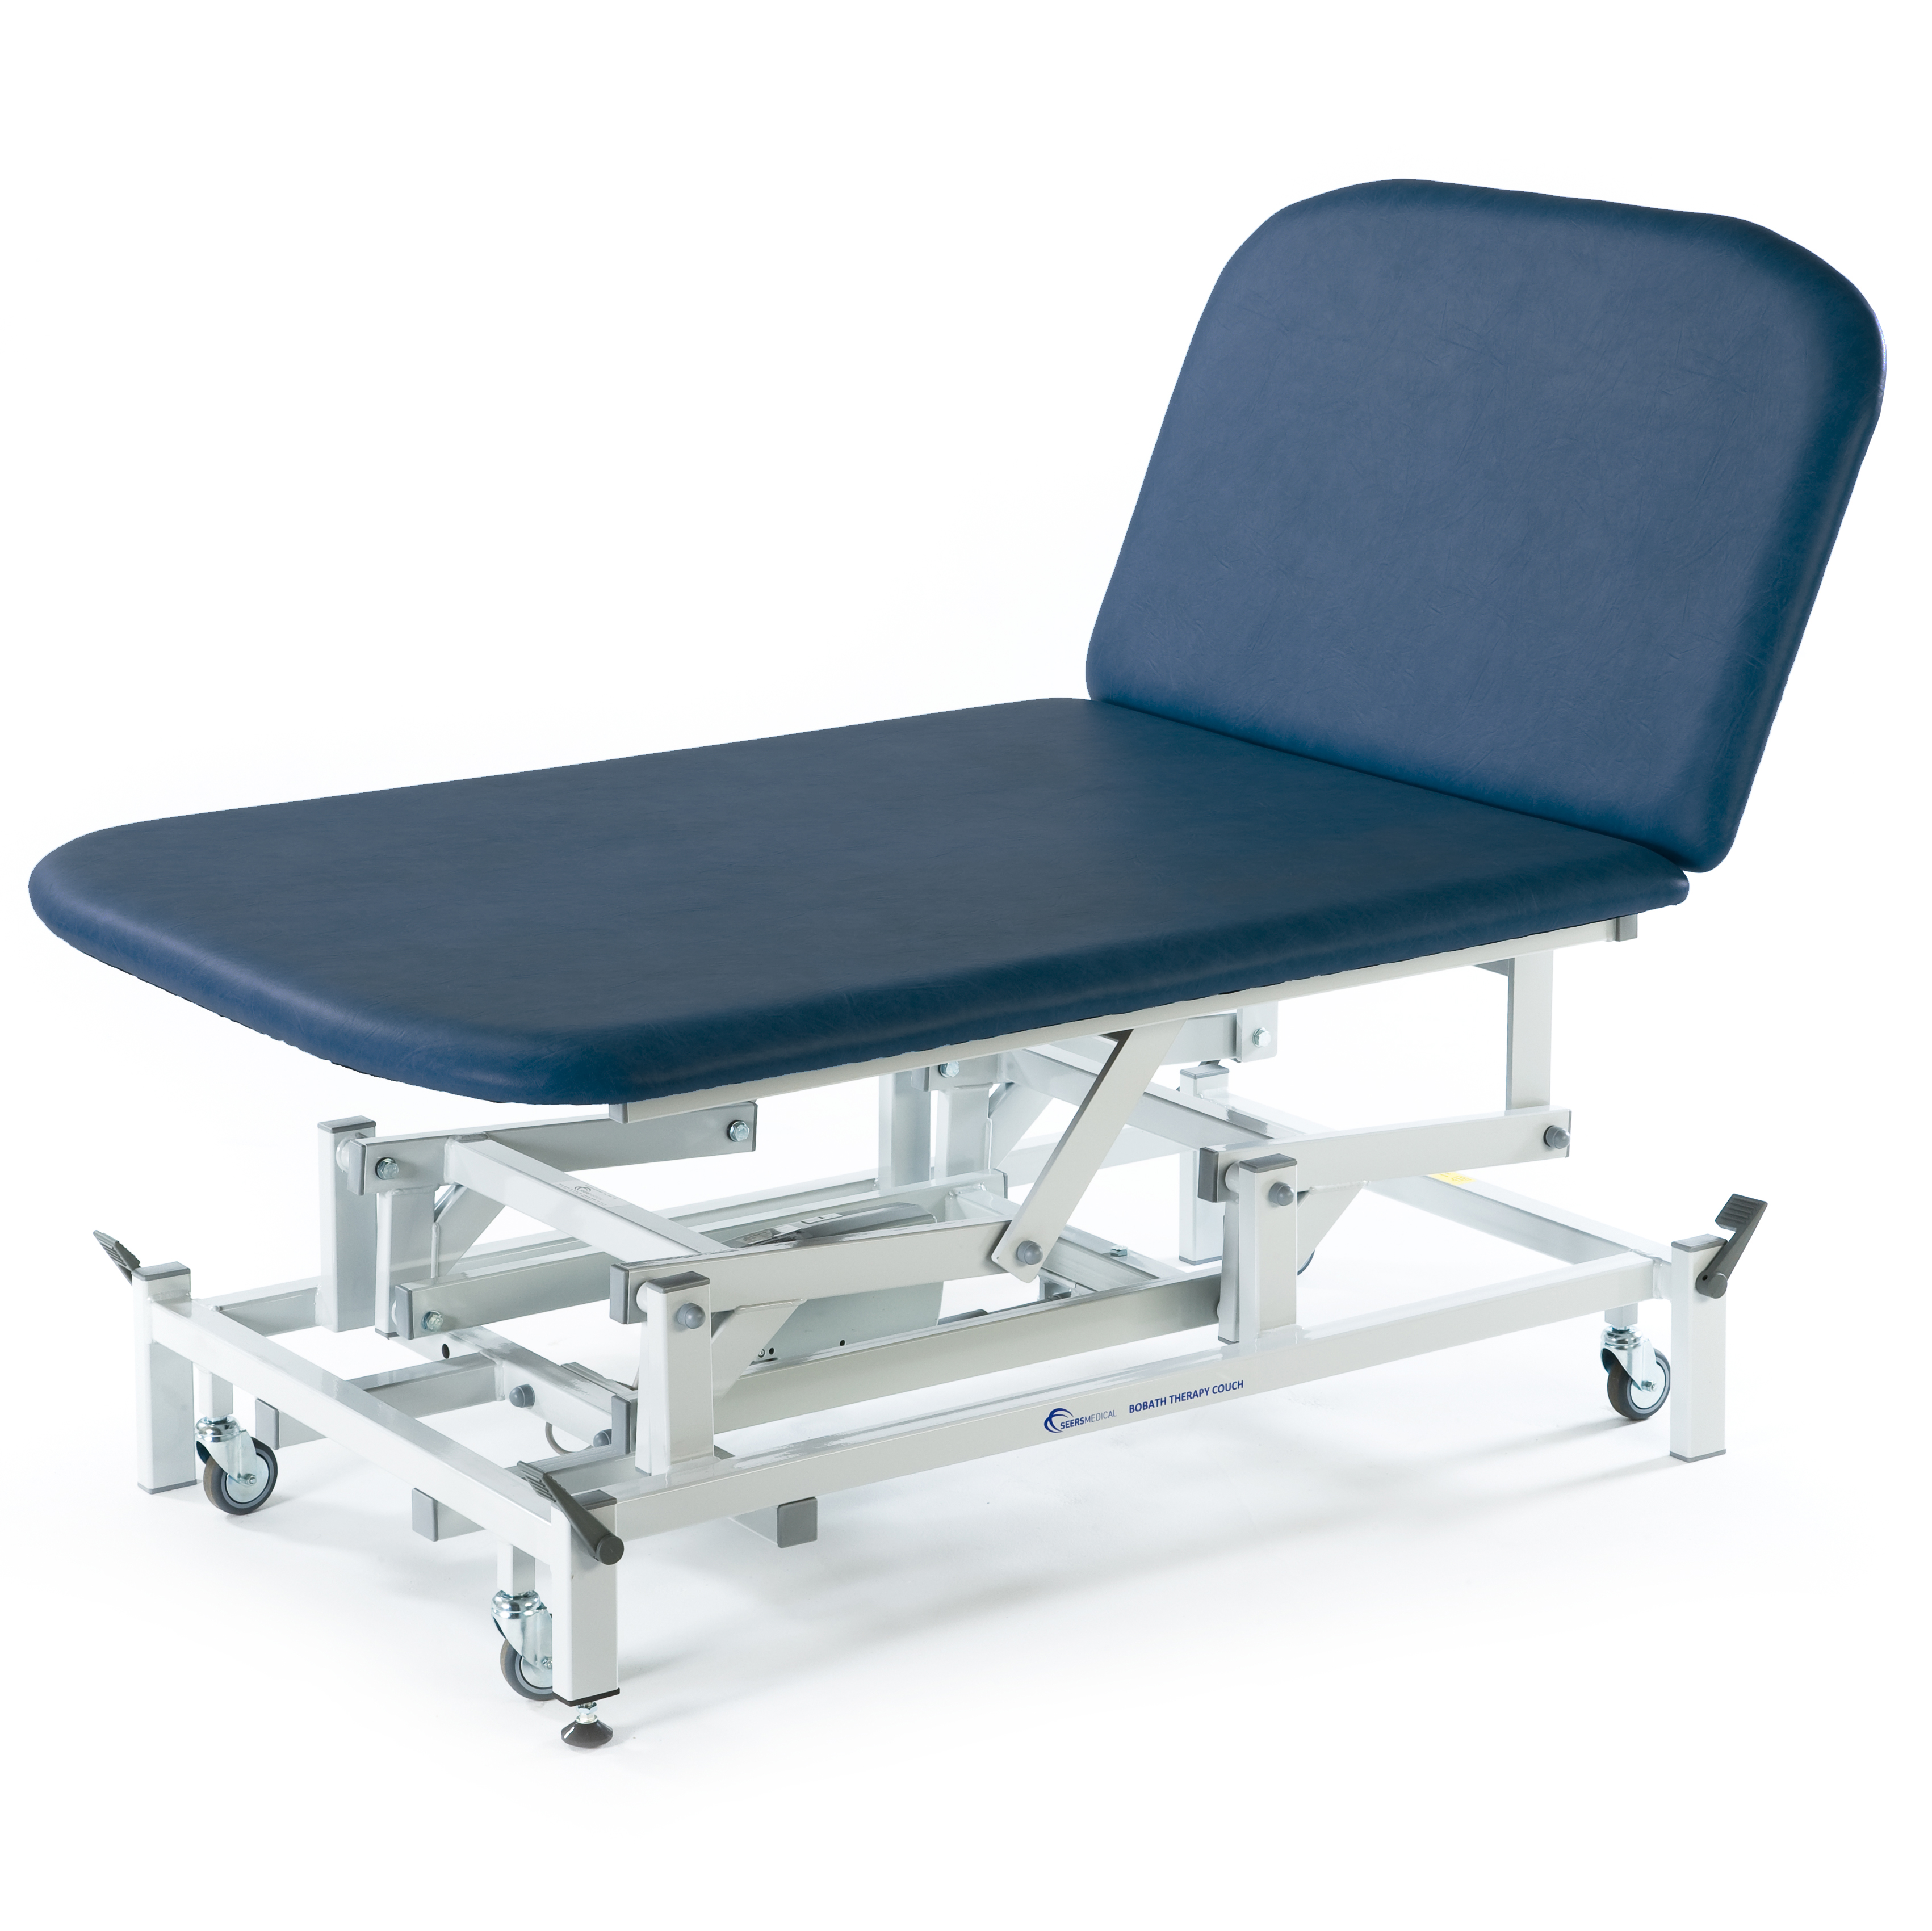 Therapy Bobath Couch Seers Medical The Uks Leading Couch Manufacturer